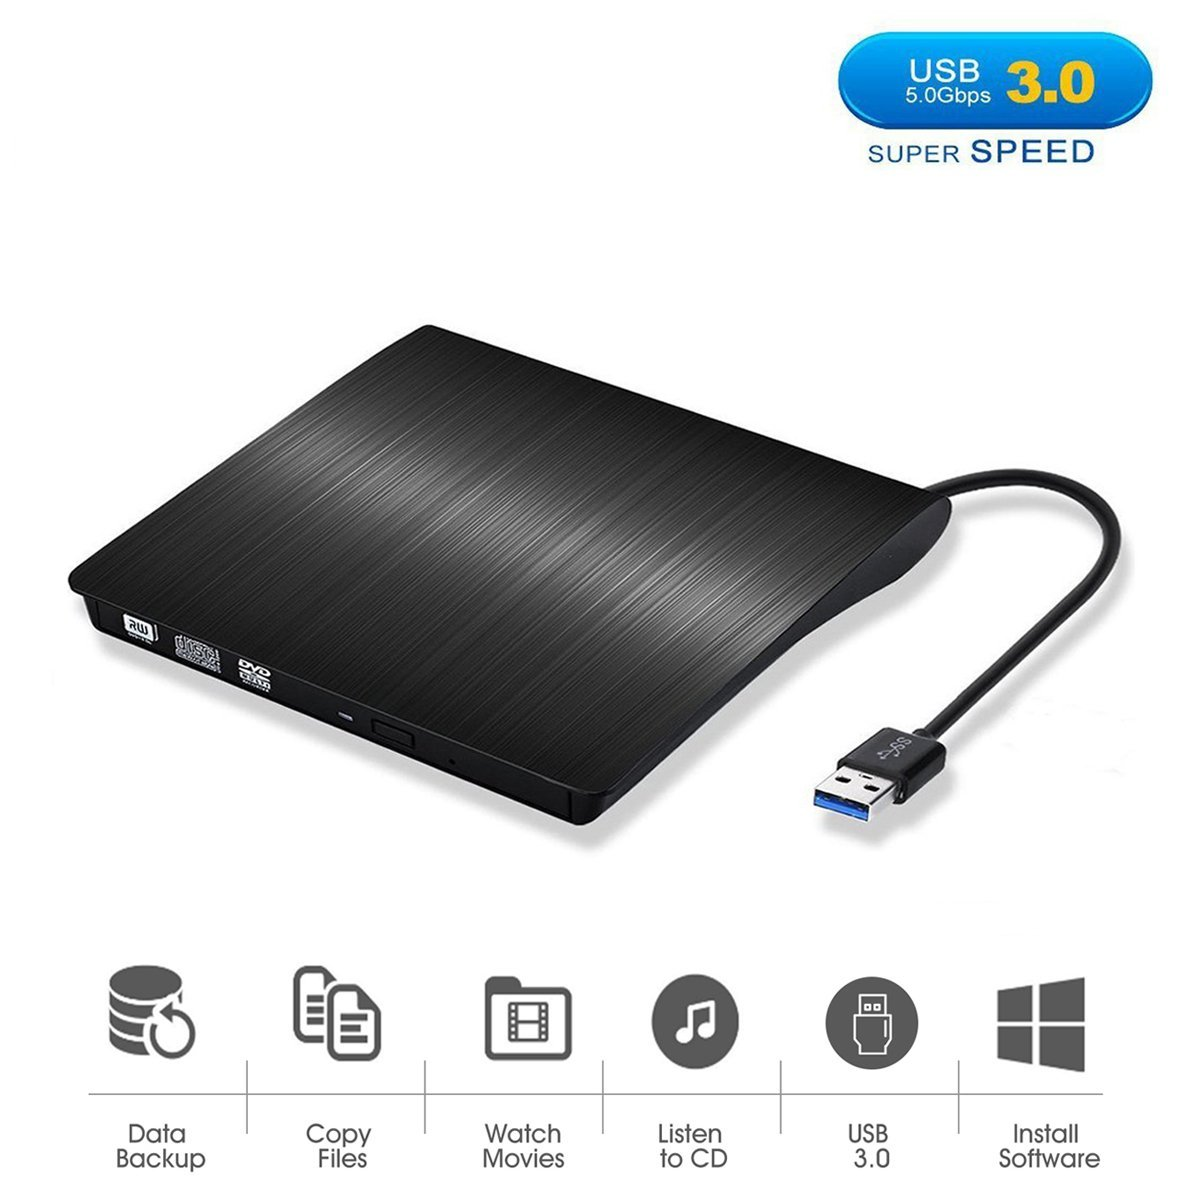 USB 3.0 External DVD CD Drive, Tagital Slim Portable External DVD/CD RW Burner Drive for Laptop, Notebook, Desktop, Mac Macbook Pro, Macbook Air and More